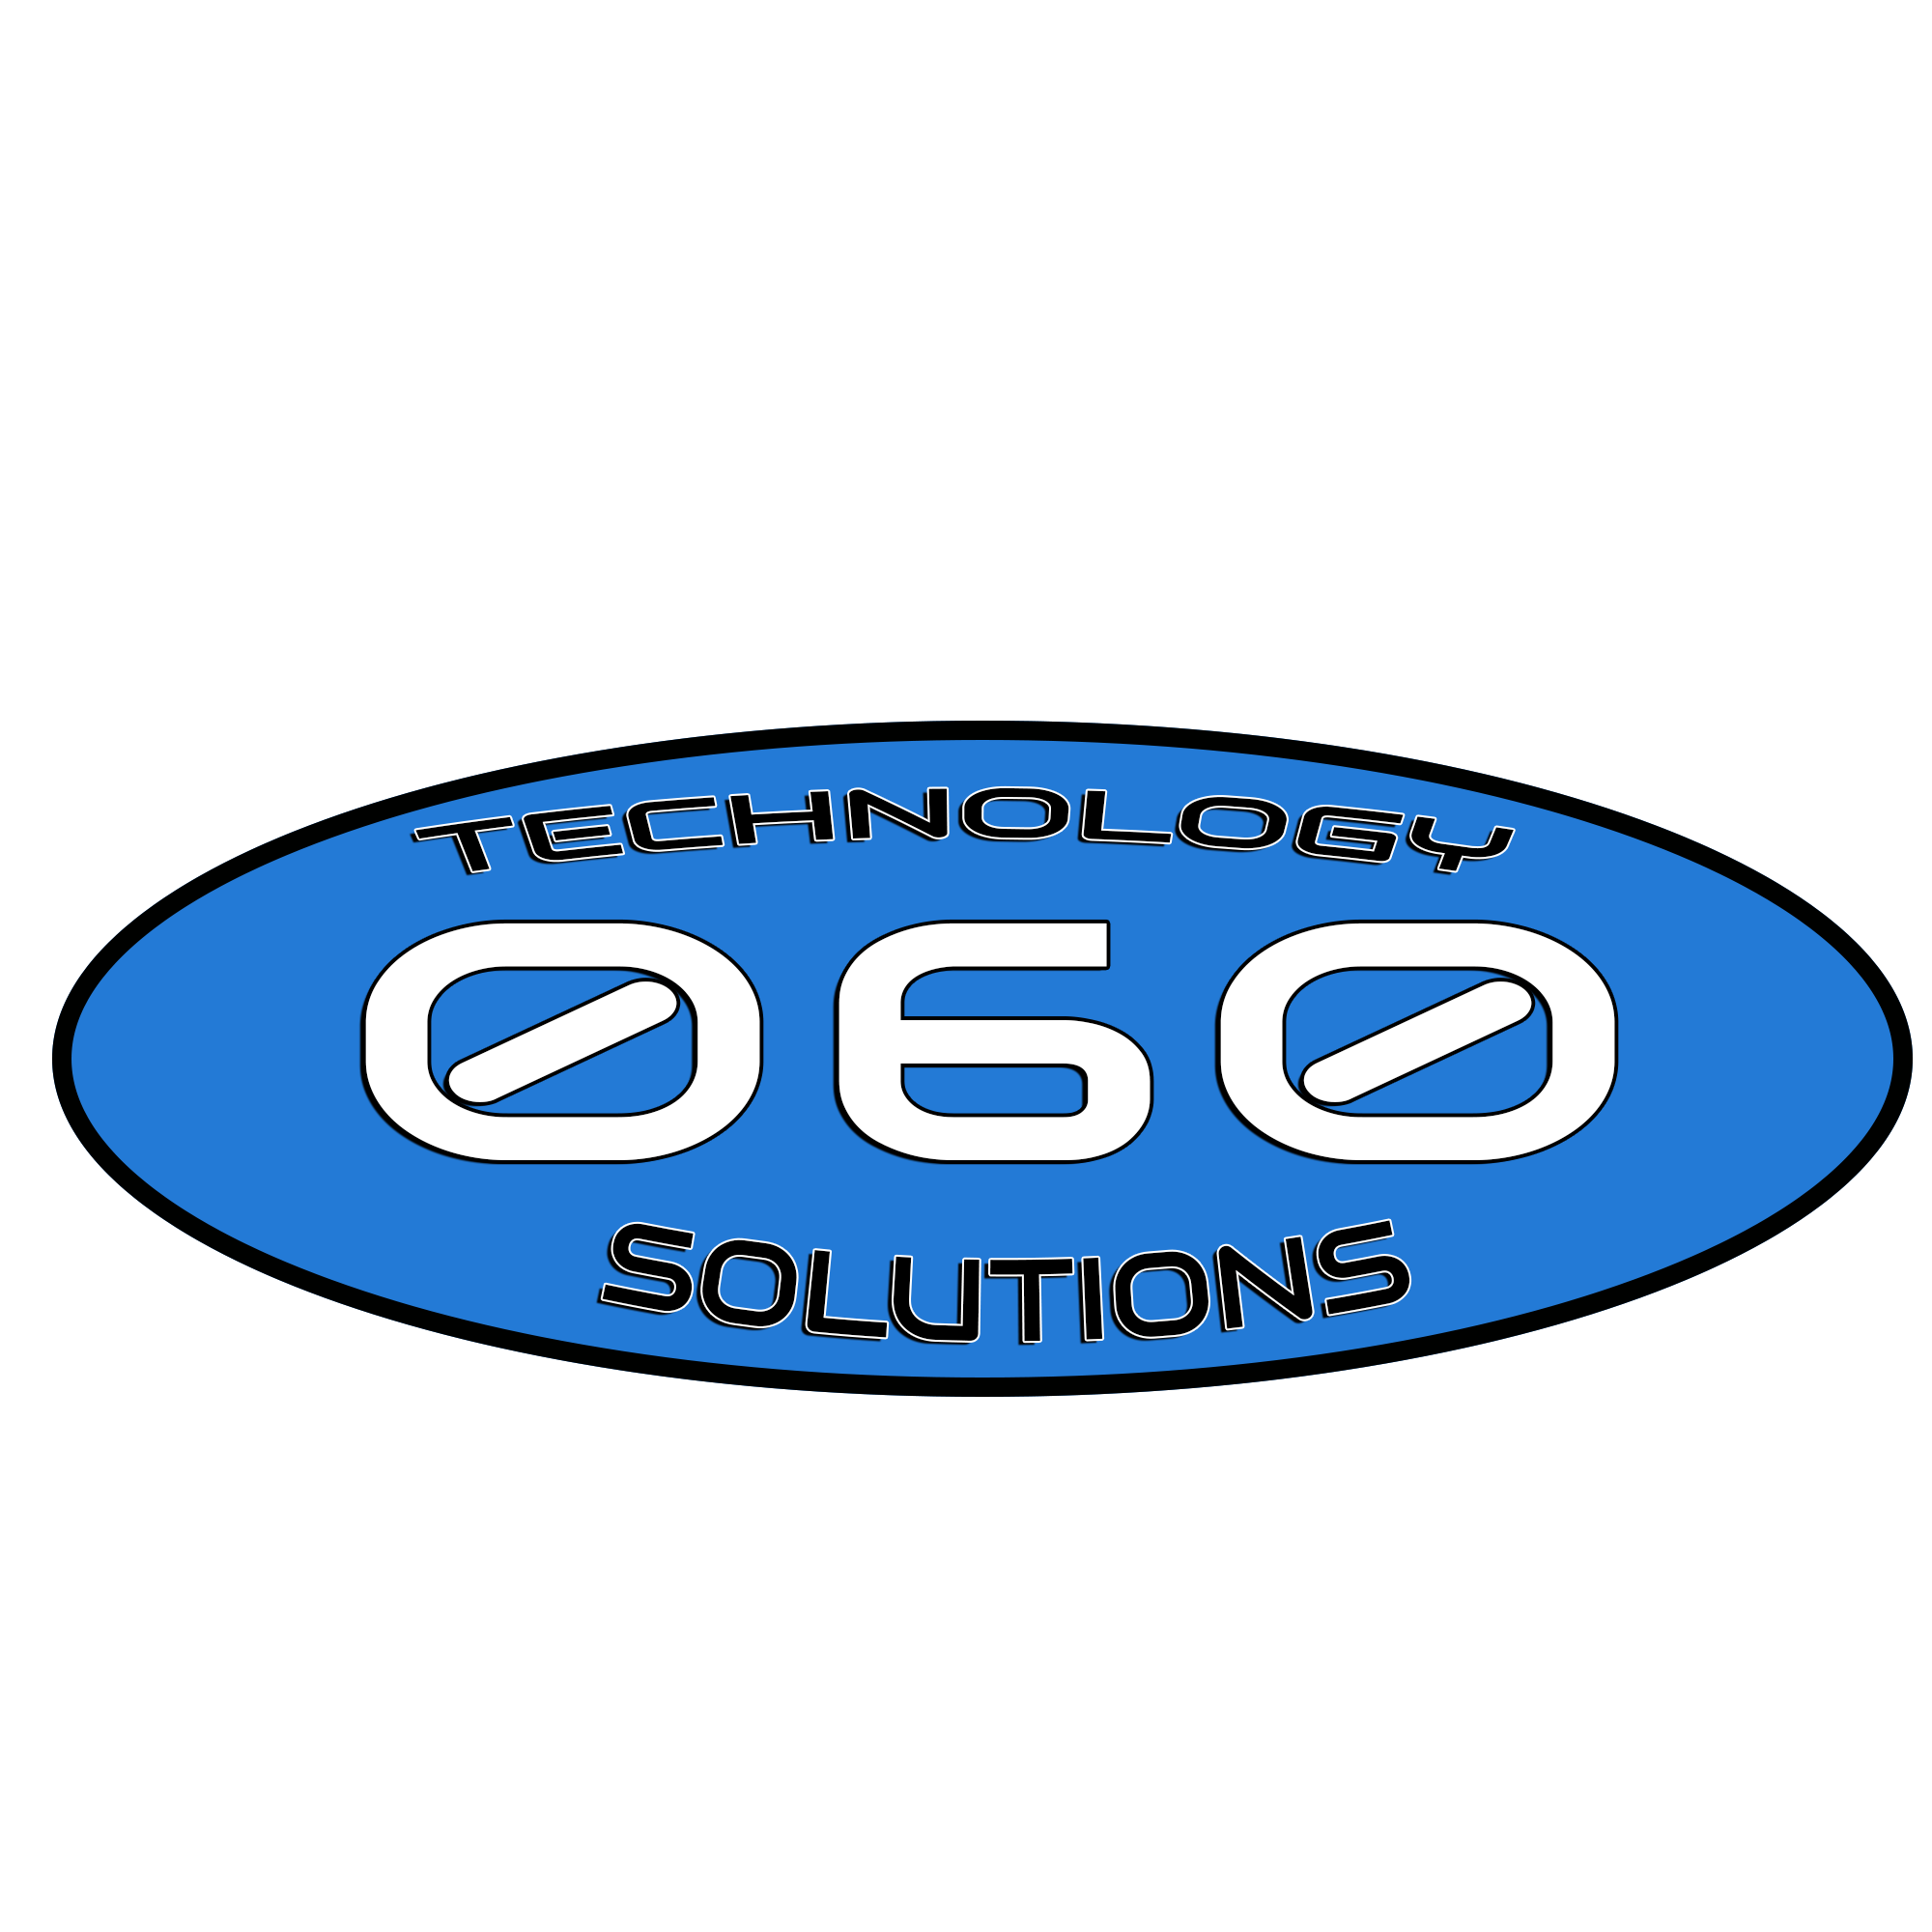 060 Technology Solutions